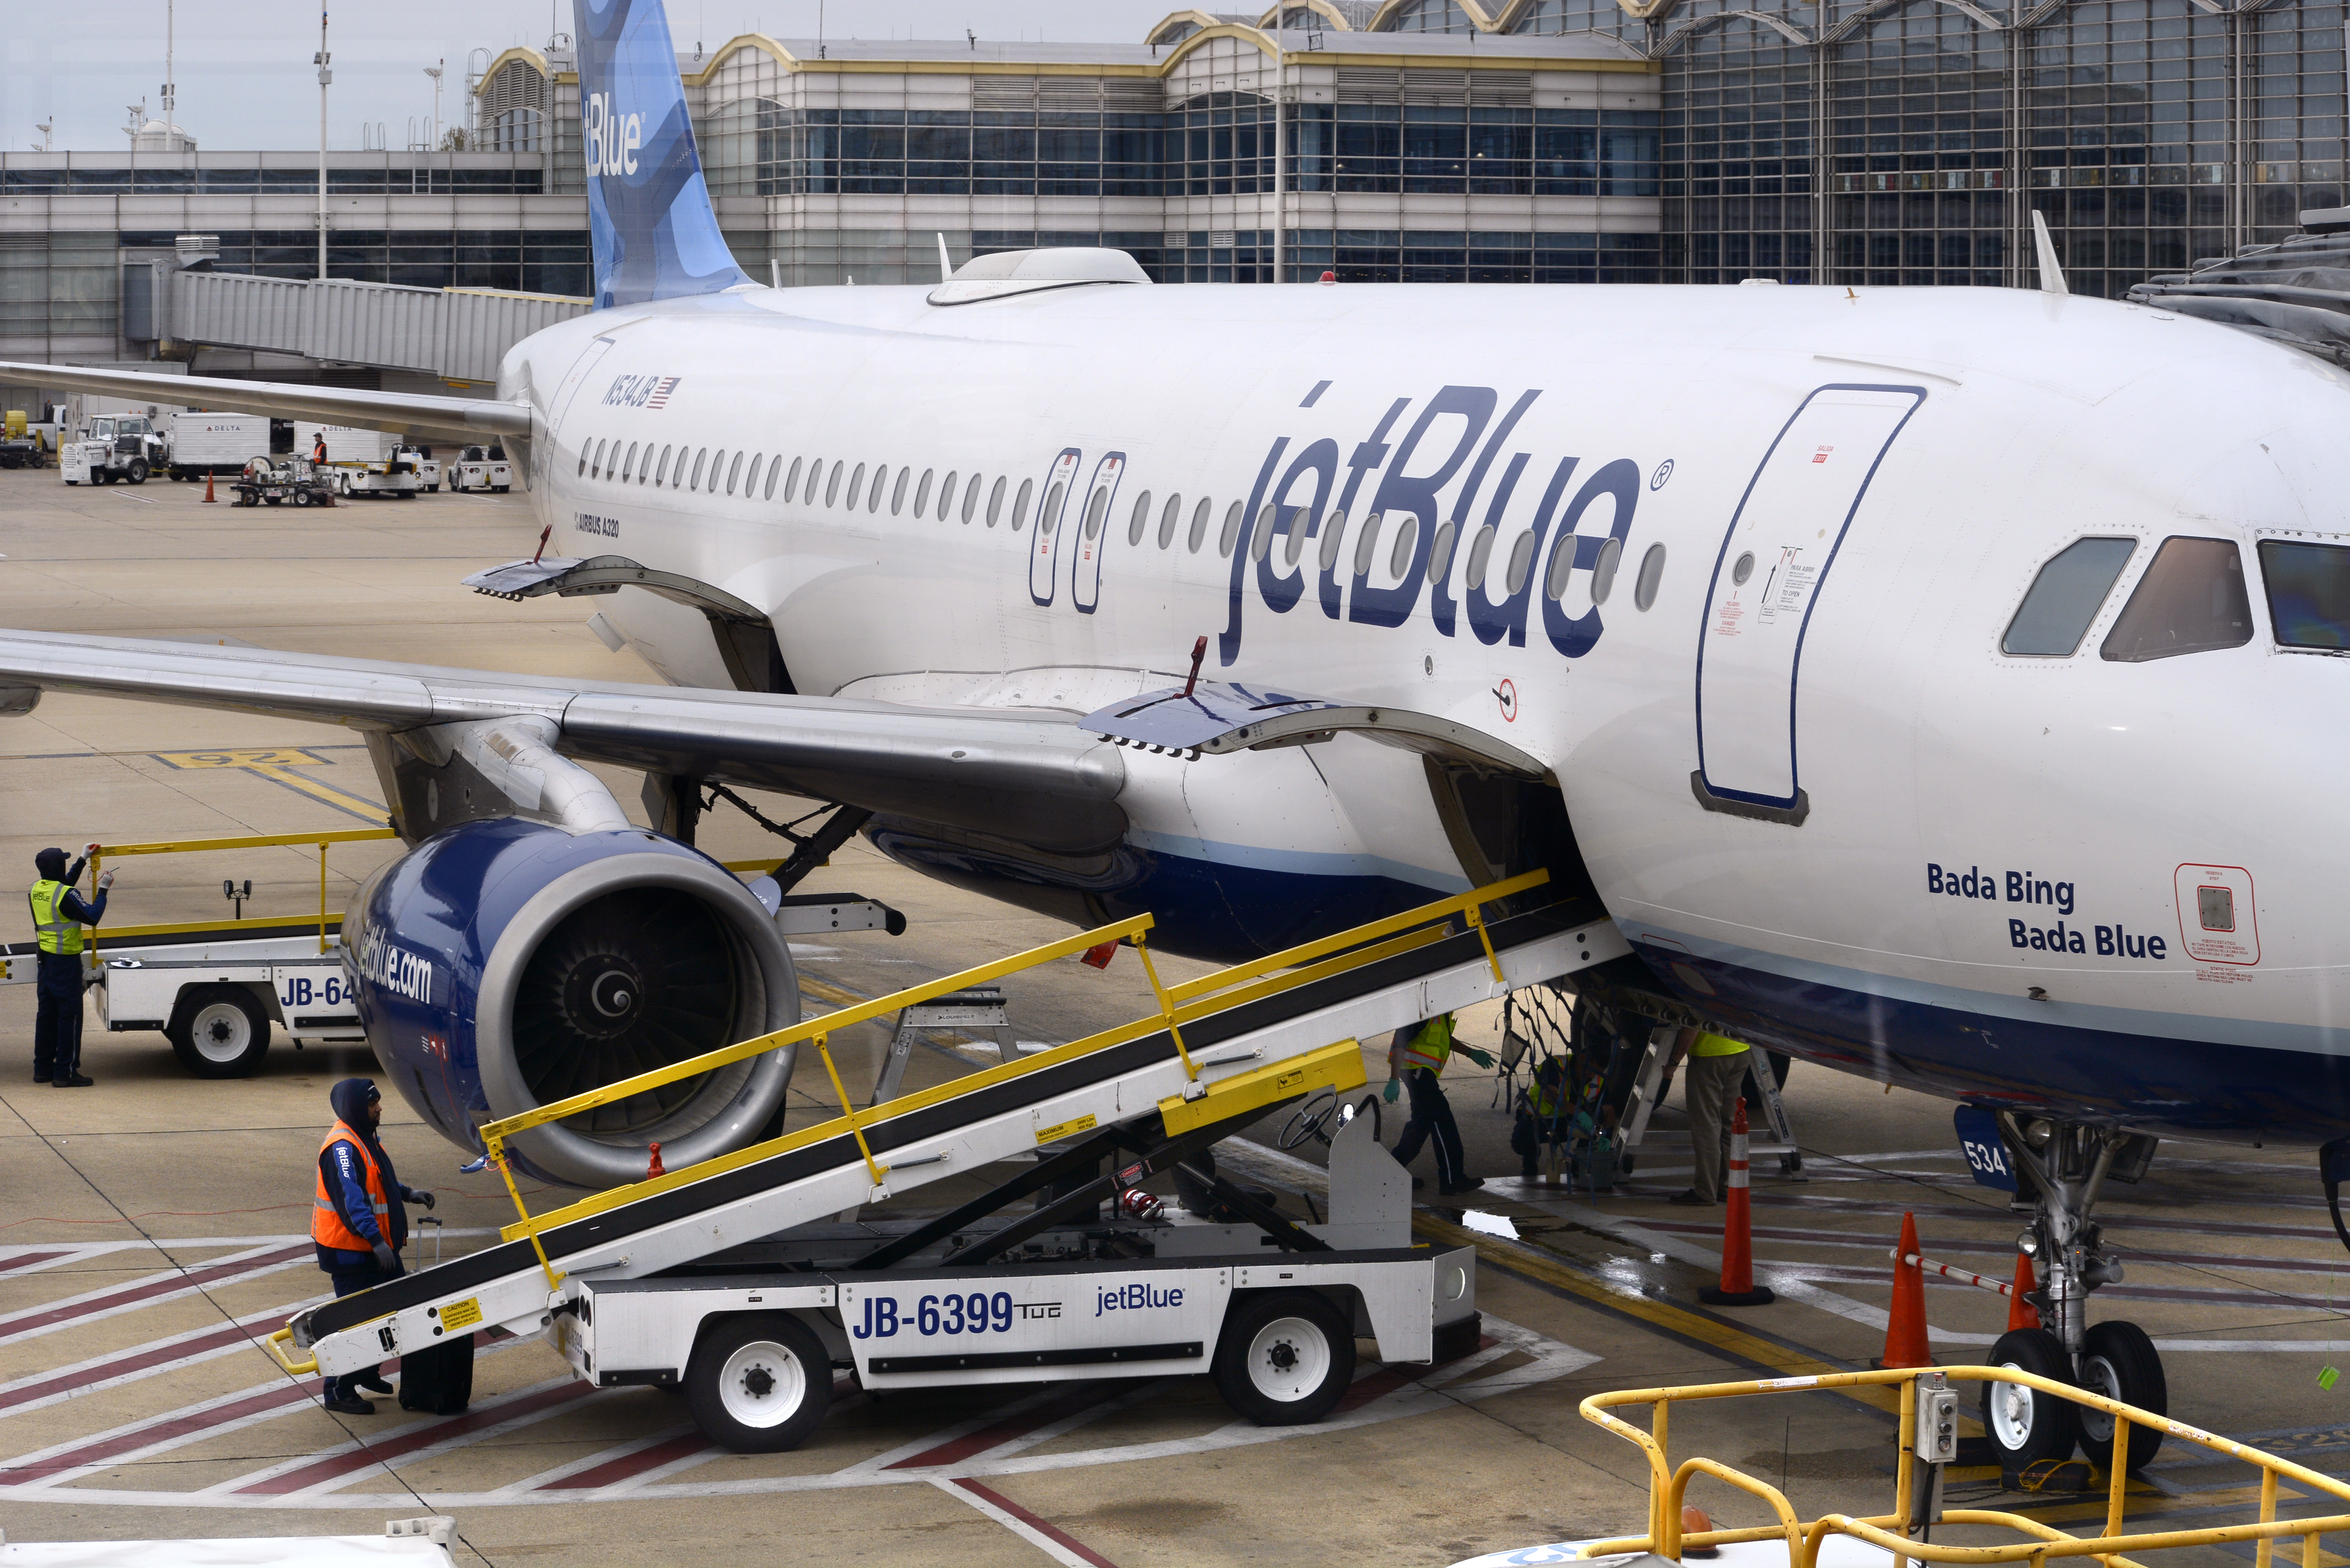 A JetBlue jet is serviced at a gate at the Ronald Reagan Washington National Airport in Washington, D.C. on April 24, 2018.